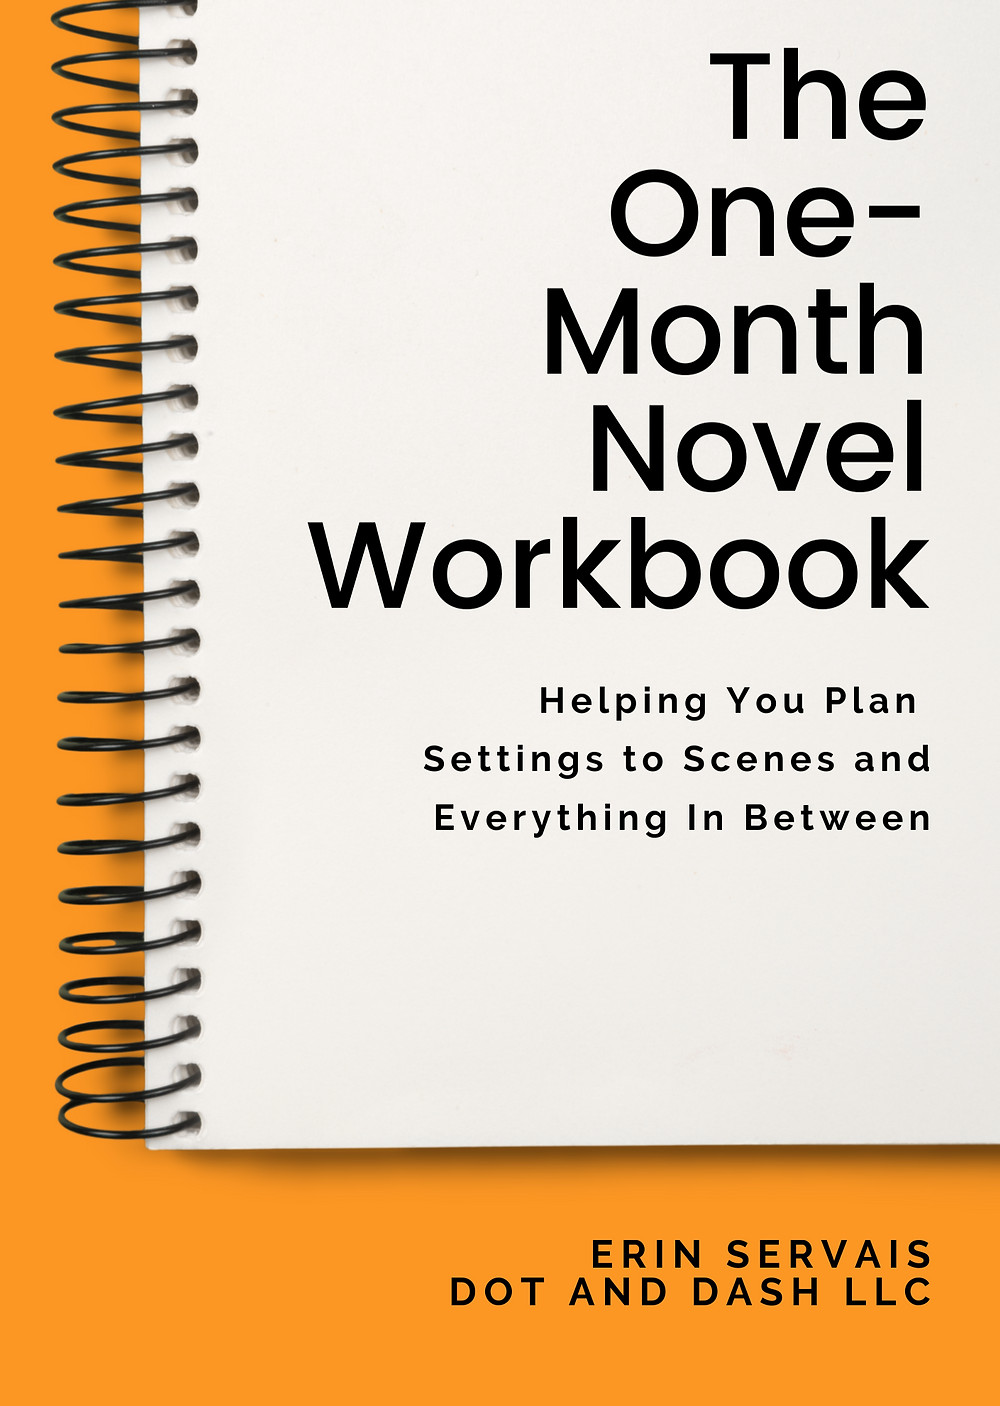 Cover Image and the title The One-Month Novel Workbook